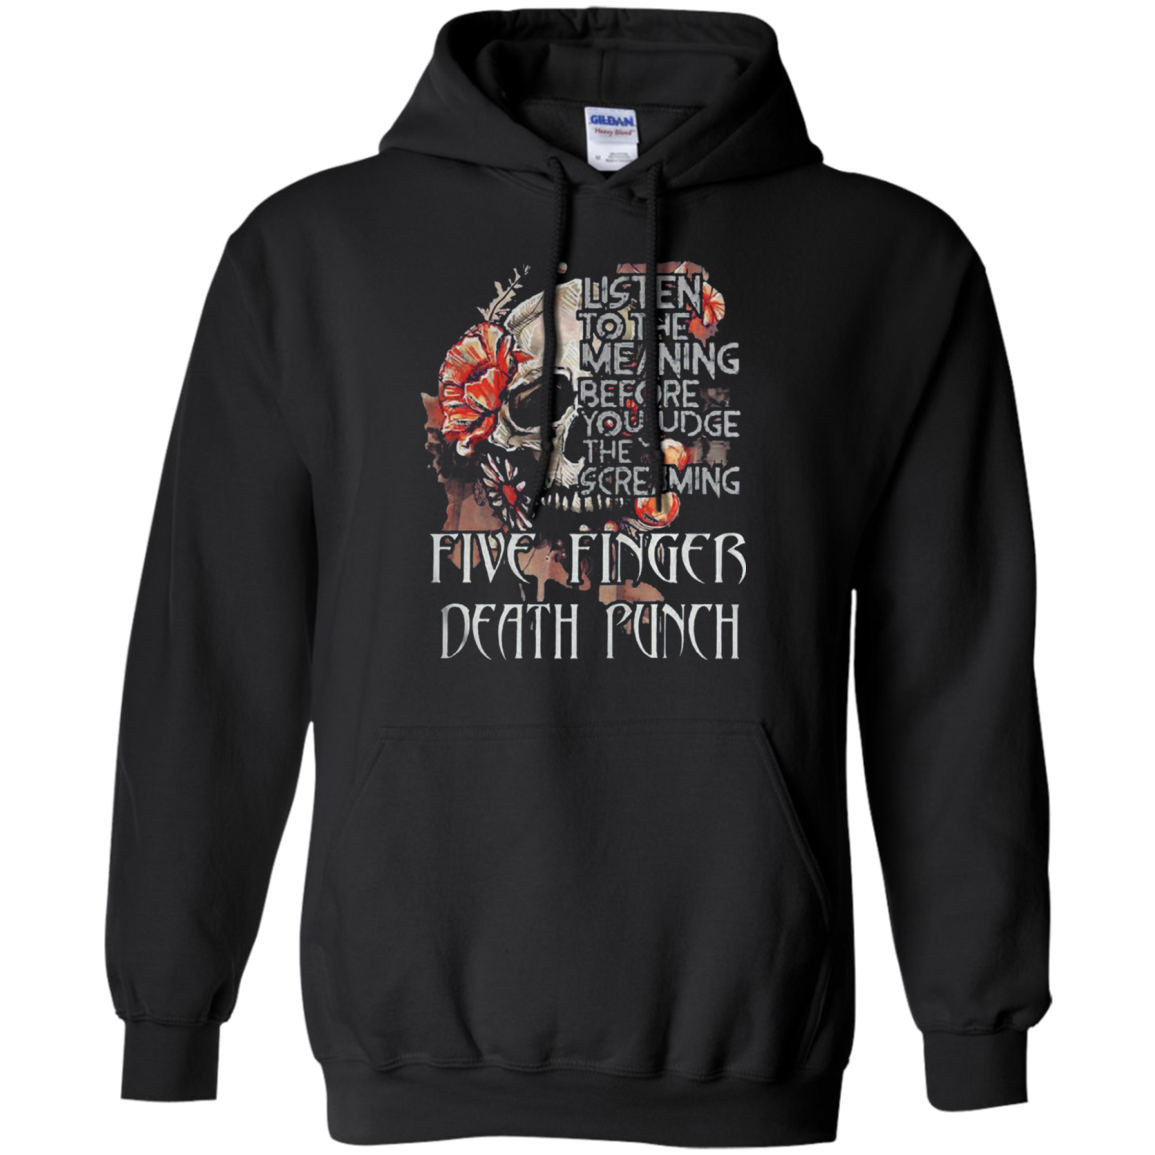 Buy Five Finger Death Punch Listen To The Meaning Before You Judge The Screaming Shirts